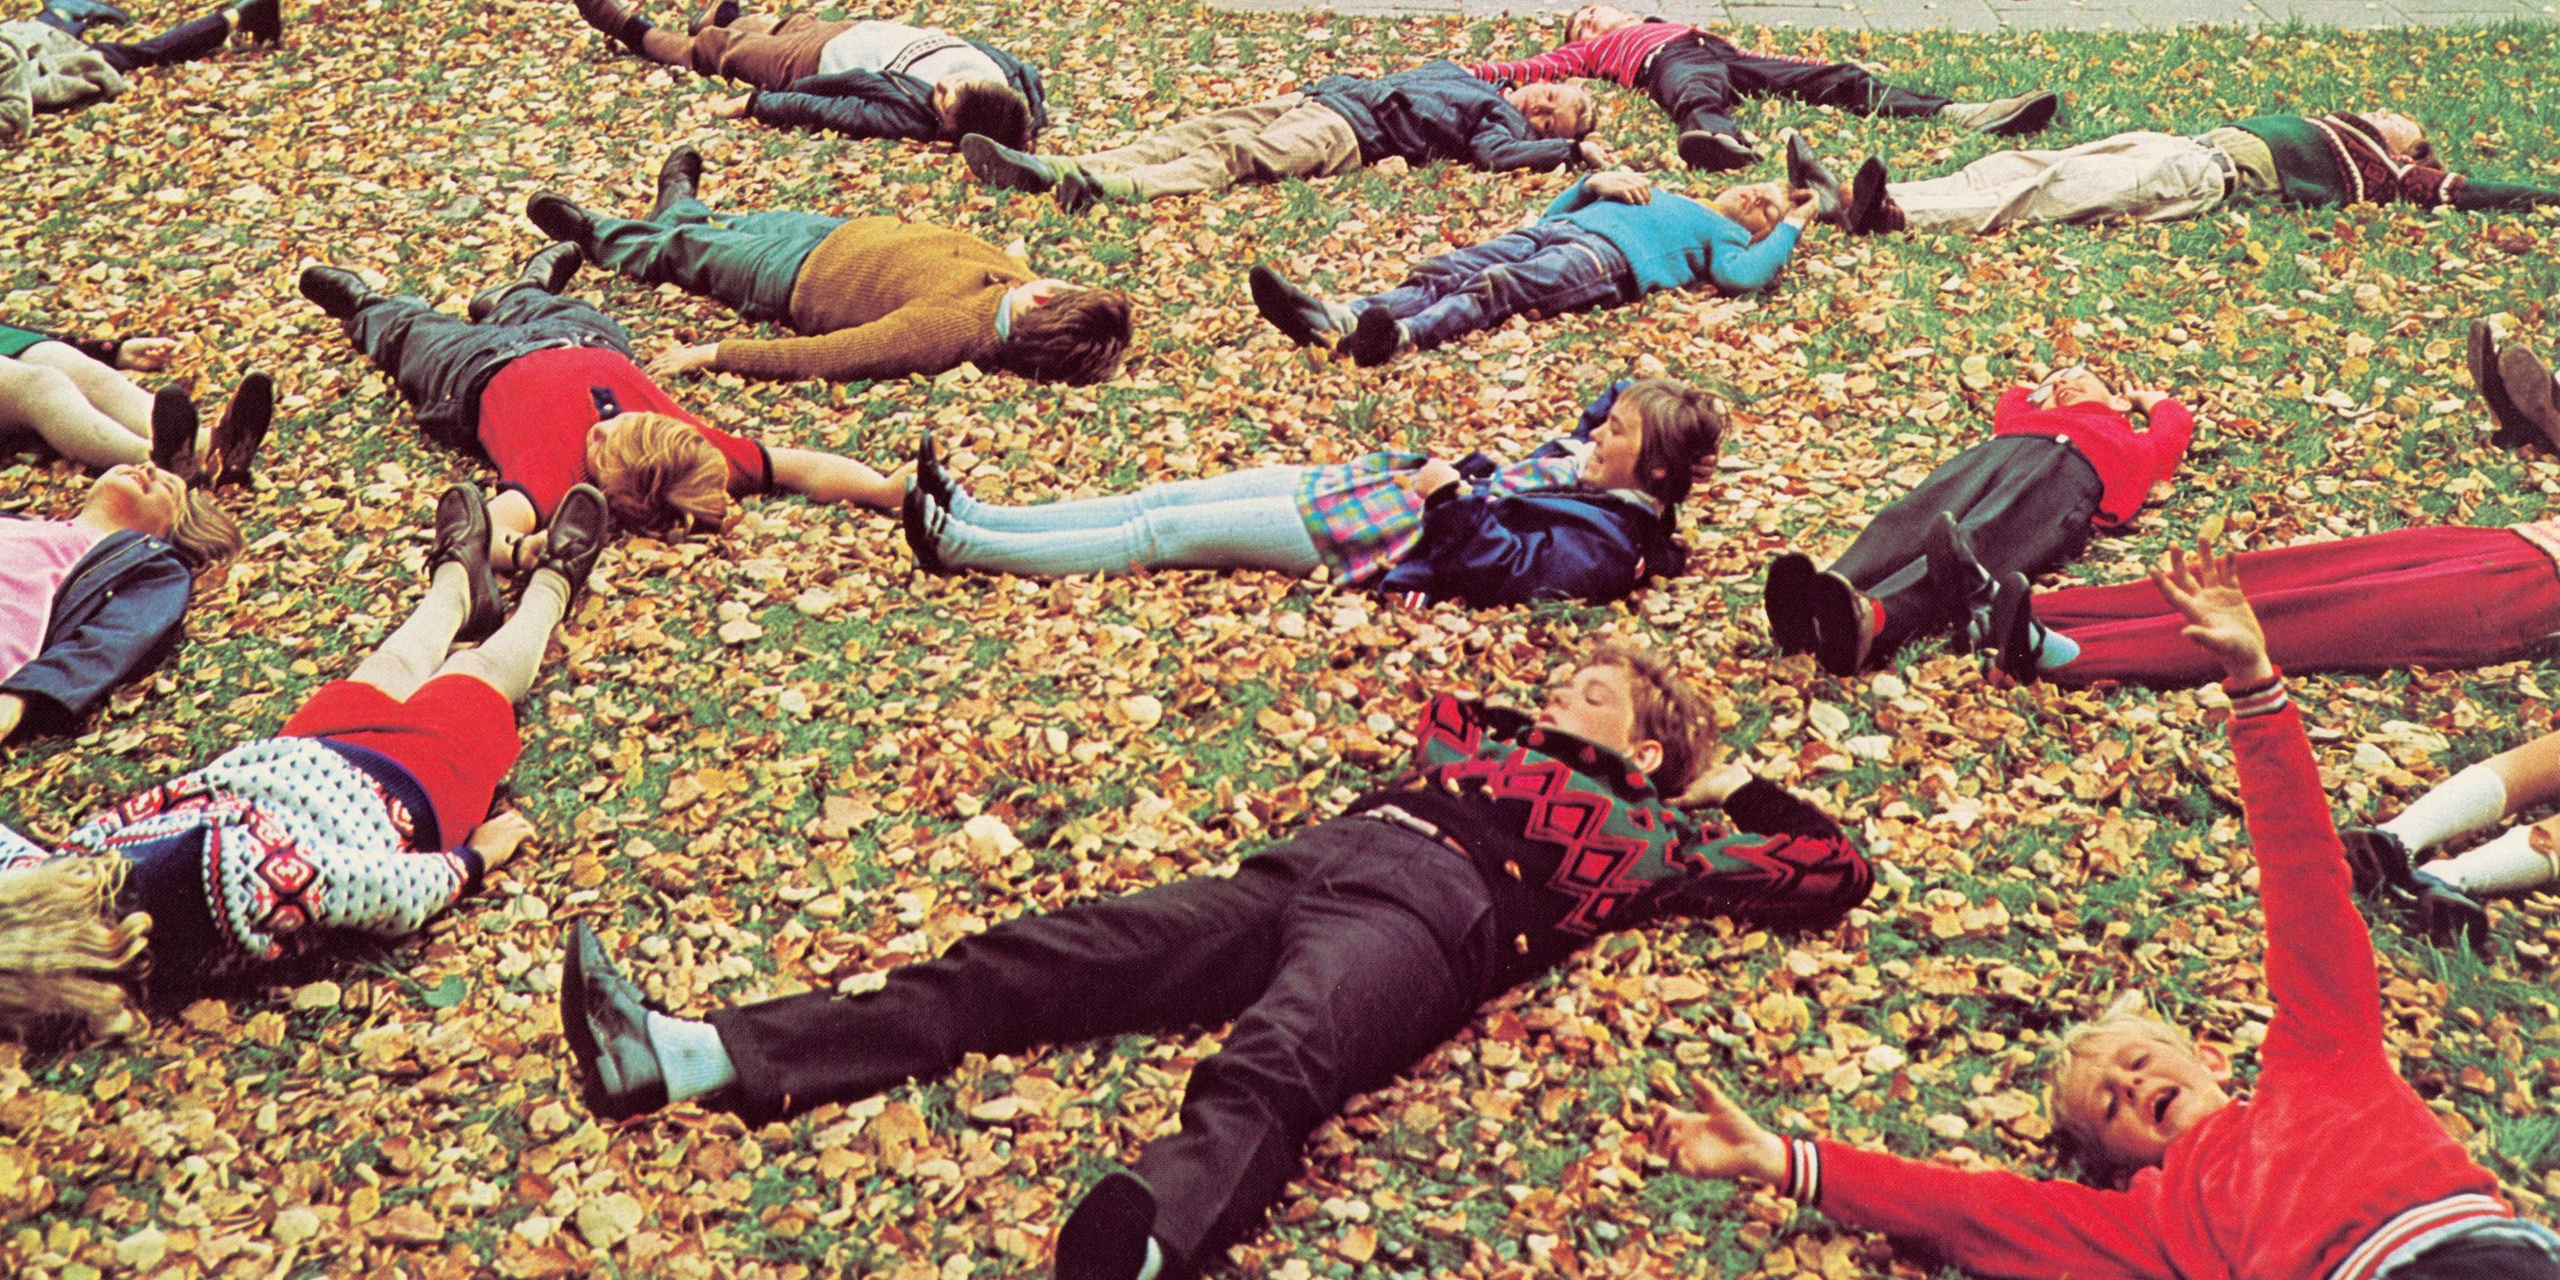 Children lying on a lawn covered with autumn leaves